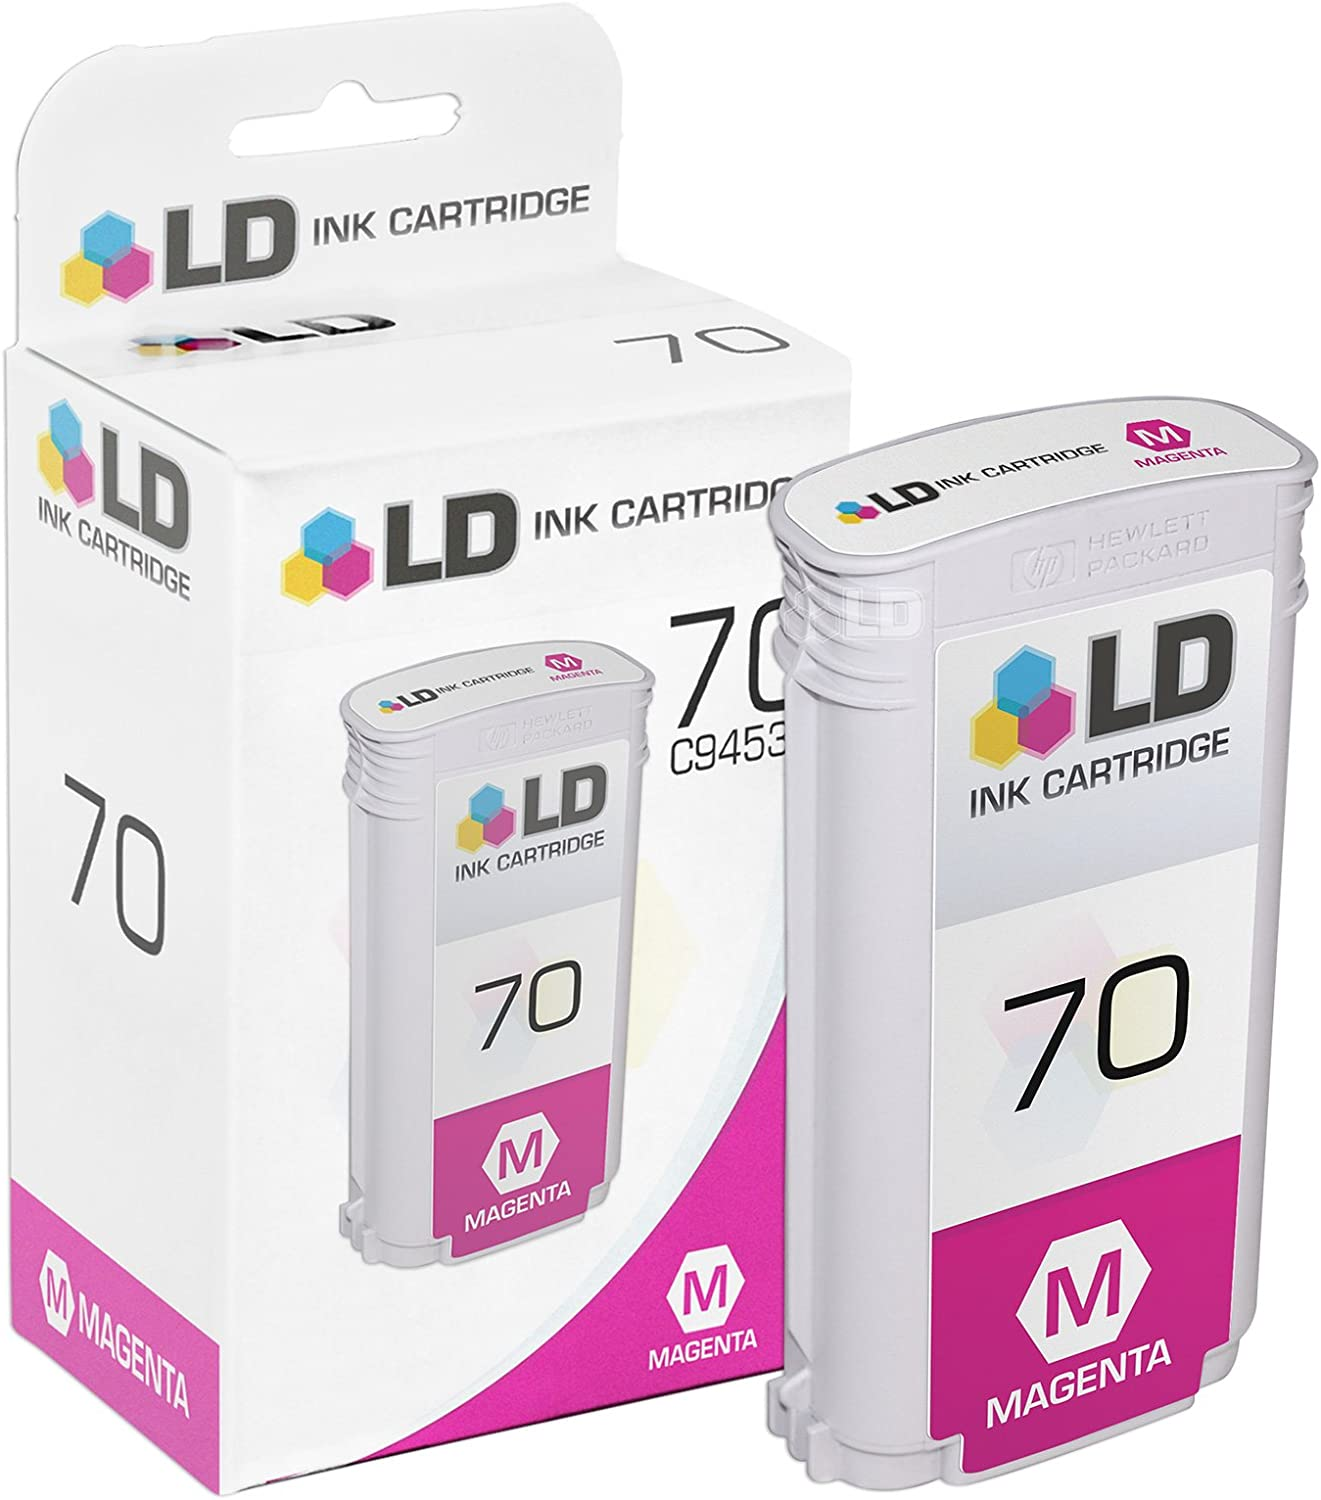 LD Remanufactured Ink Cartridge Replacement for HP 70 C9453A (Magenta)